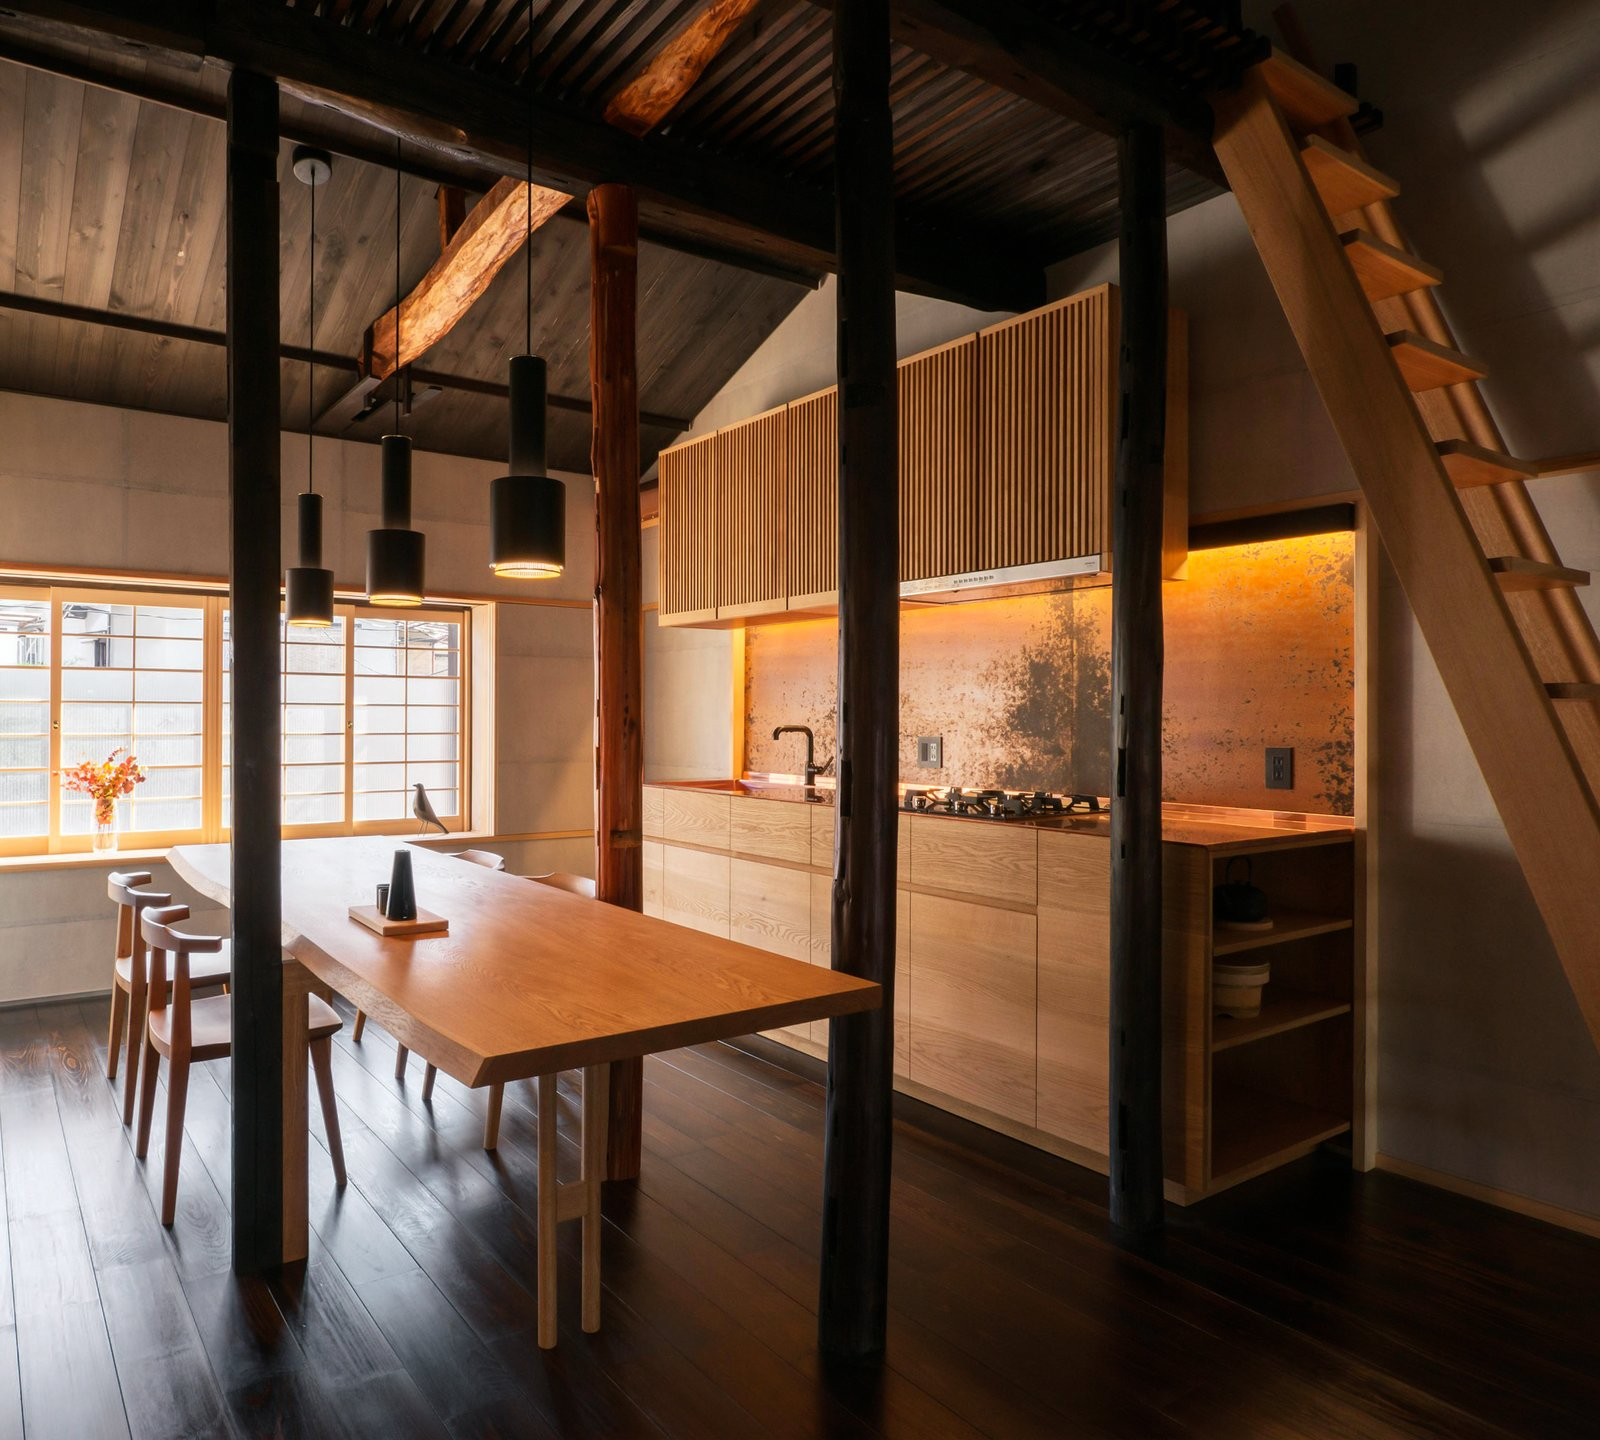 Dining Room, Painted Wood Floor, Wall Lighting, Recessed Lighting, Chair, Pendant Lighting, Storage, Bench, Shelves, and Table From the stained wallpaper, to the lacquered floorboards, to the timber joinery, every element has been hand finished using traditional techniques.  Ichijoji House by atelier Luke